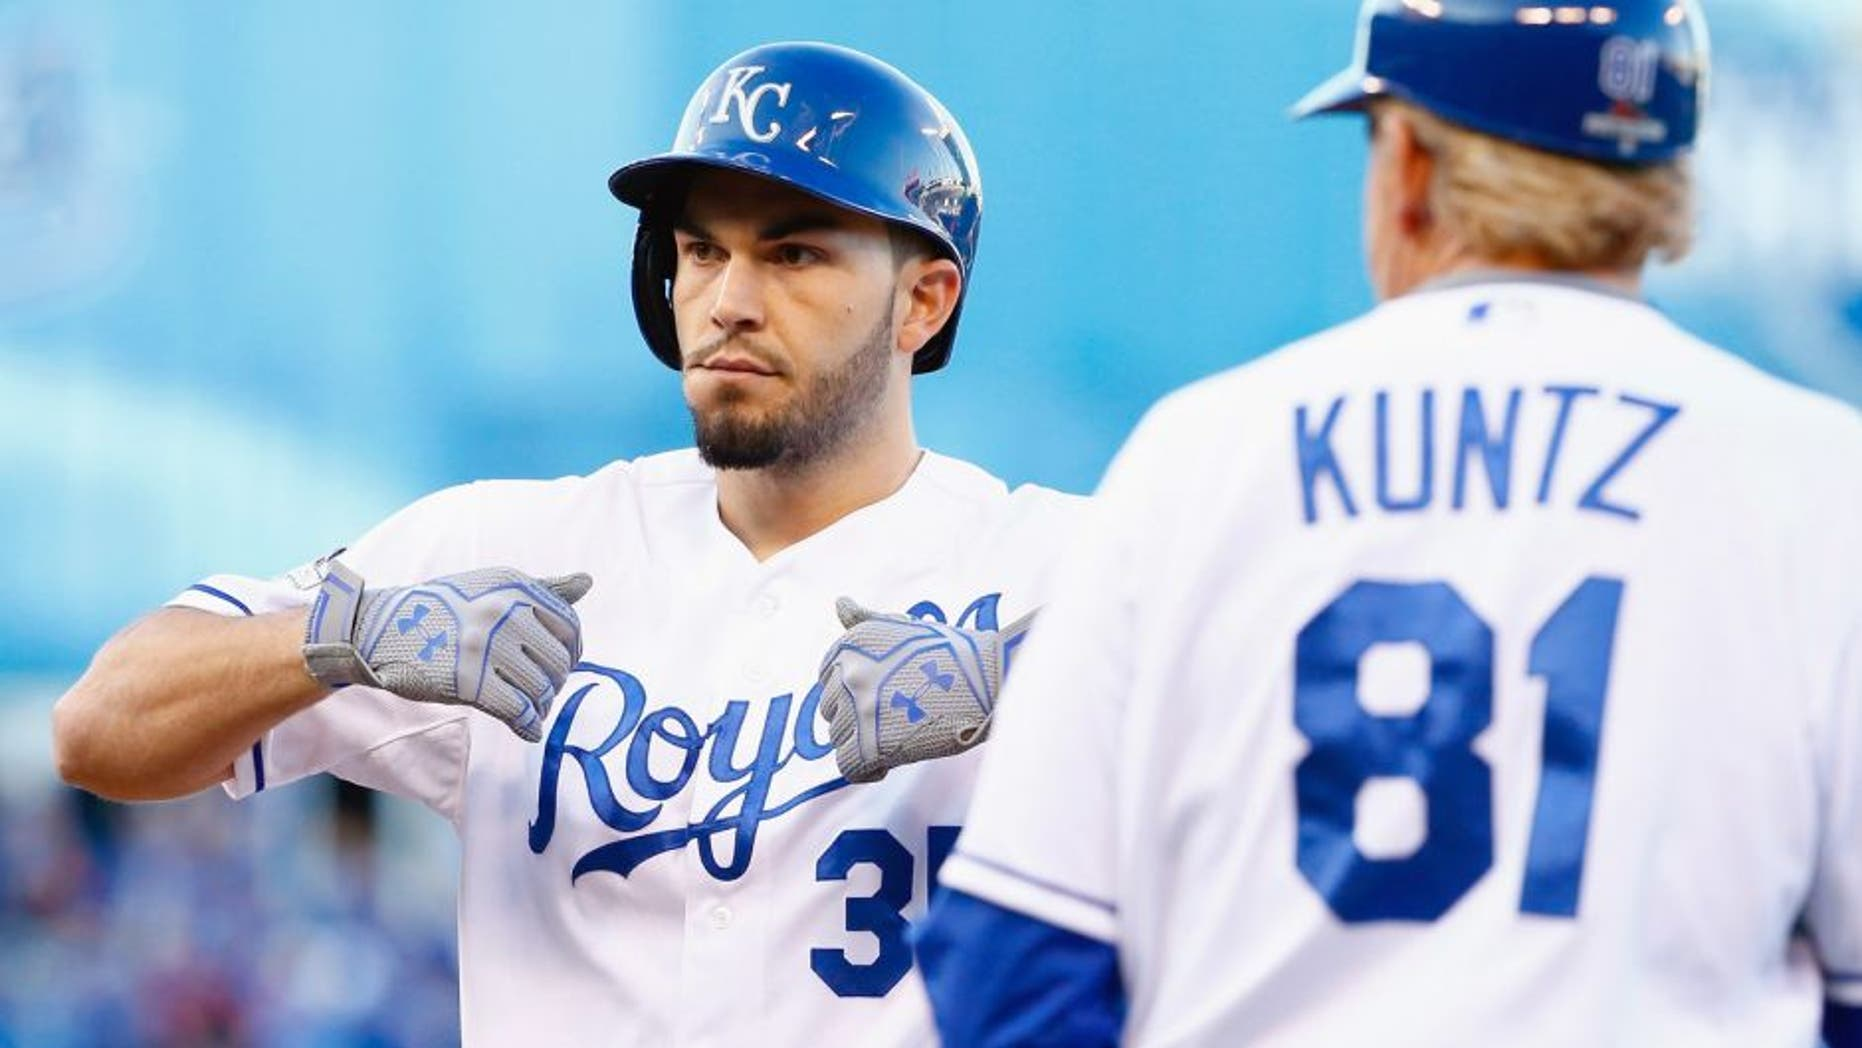 Eric Hosmer #35 of the Kansas City Royals reacts after hitting an RBI single in the seventh inning against the Toronto Blue Jays in game two of the American League Championship Series at Kauffman Stadium on October 17, 2015 in Kansas City, Missouri. (Photo by Jamie Squire/Getty Images)